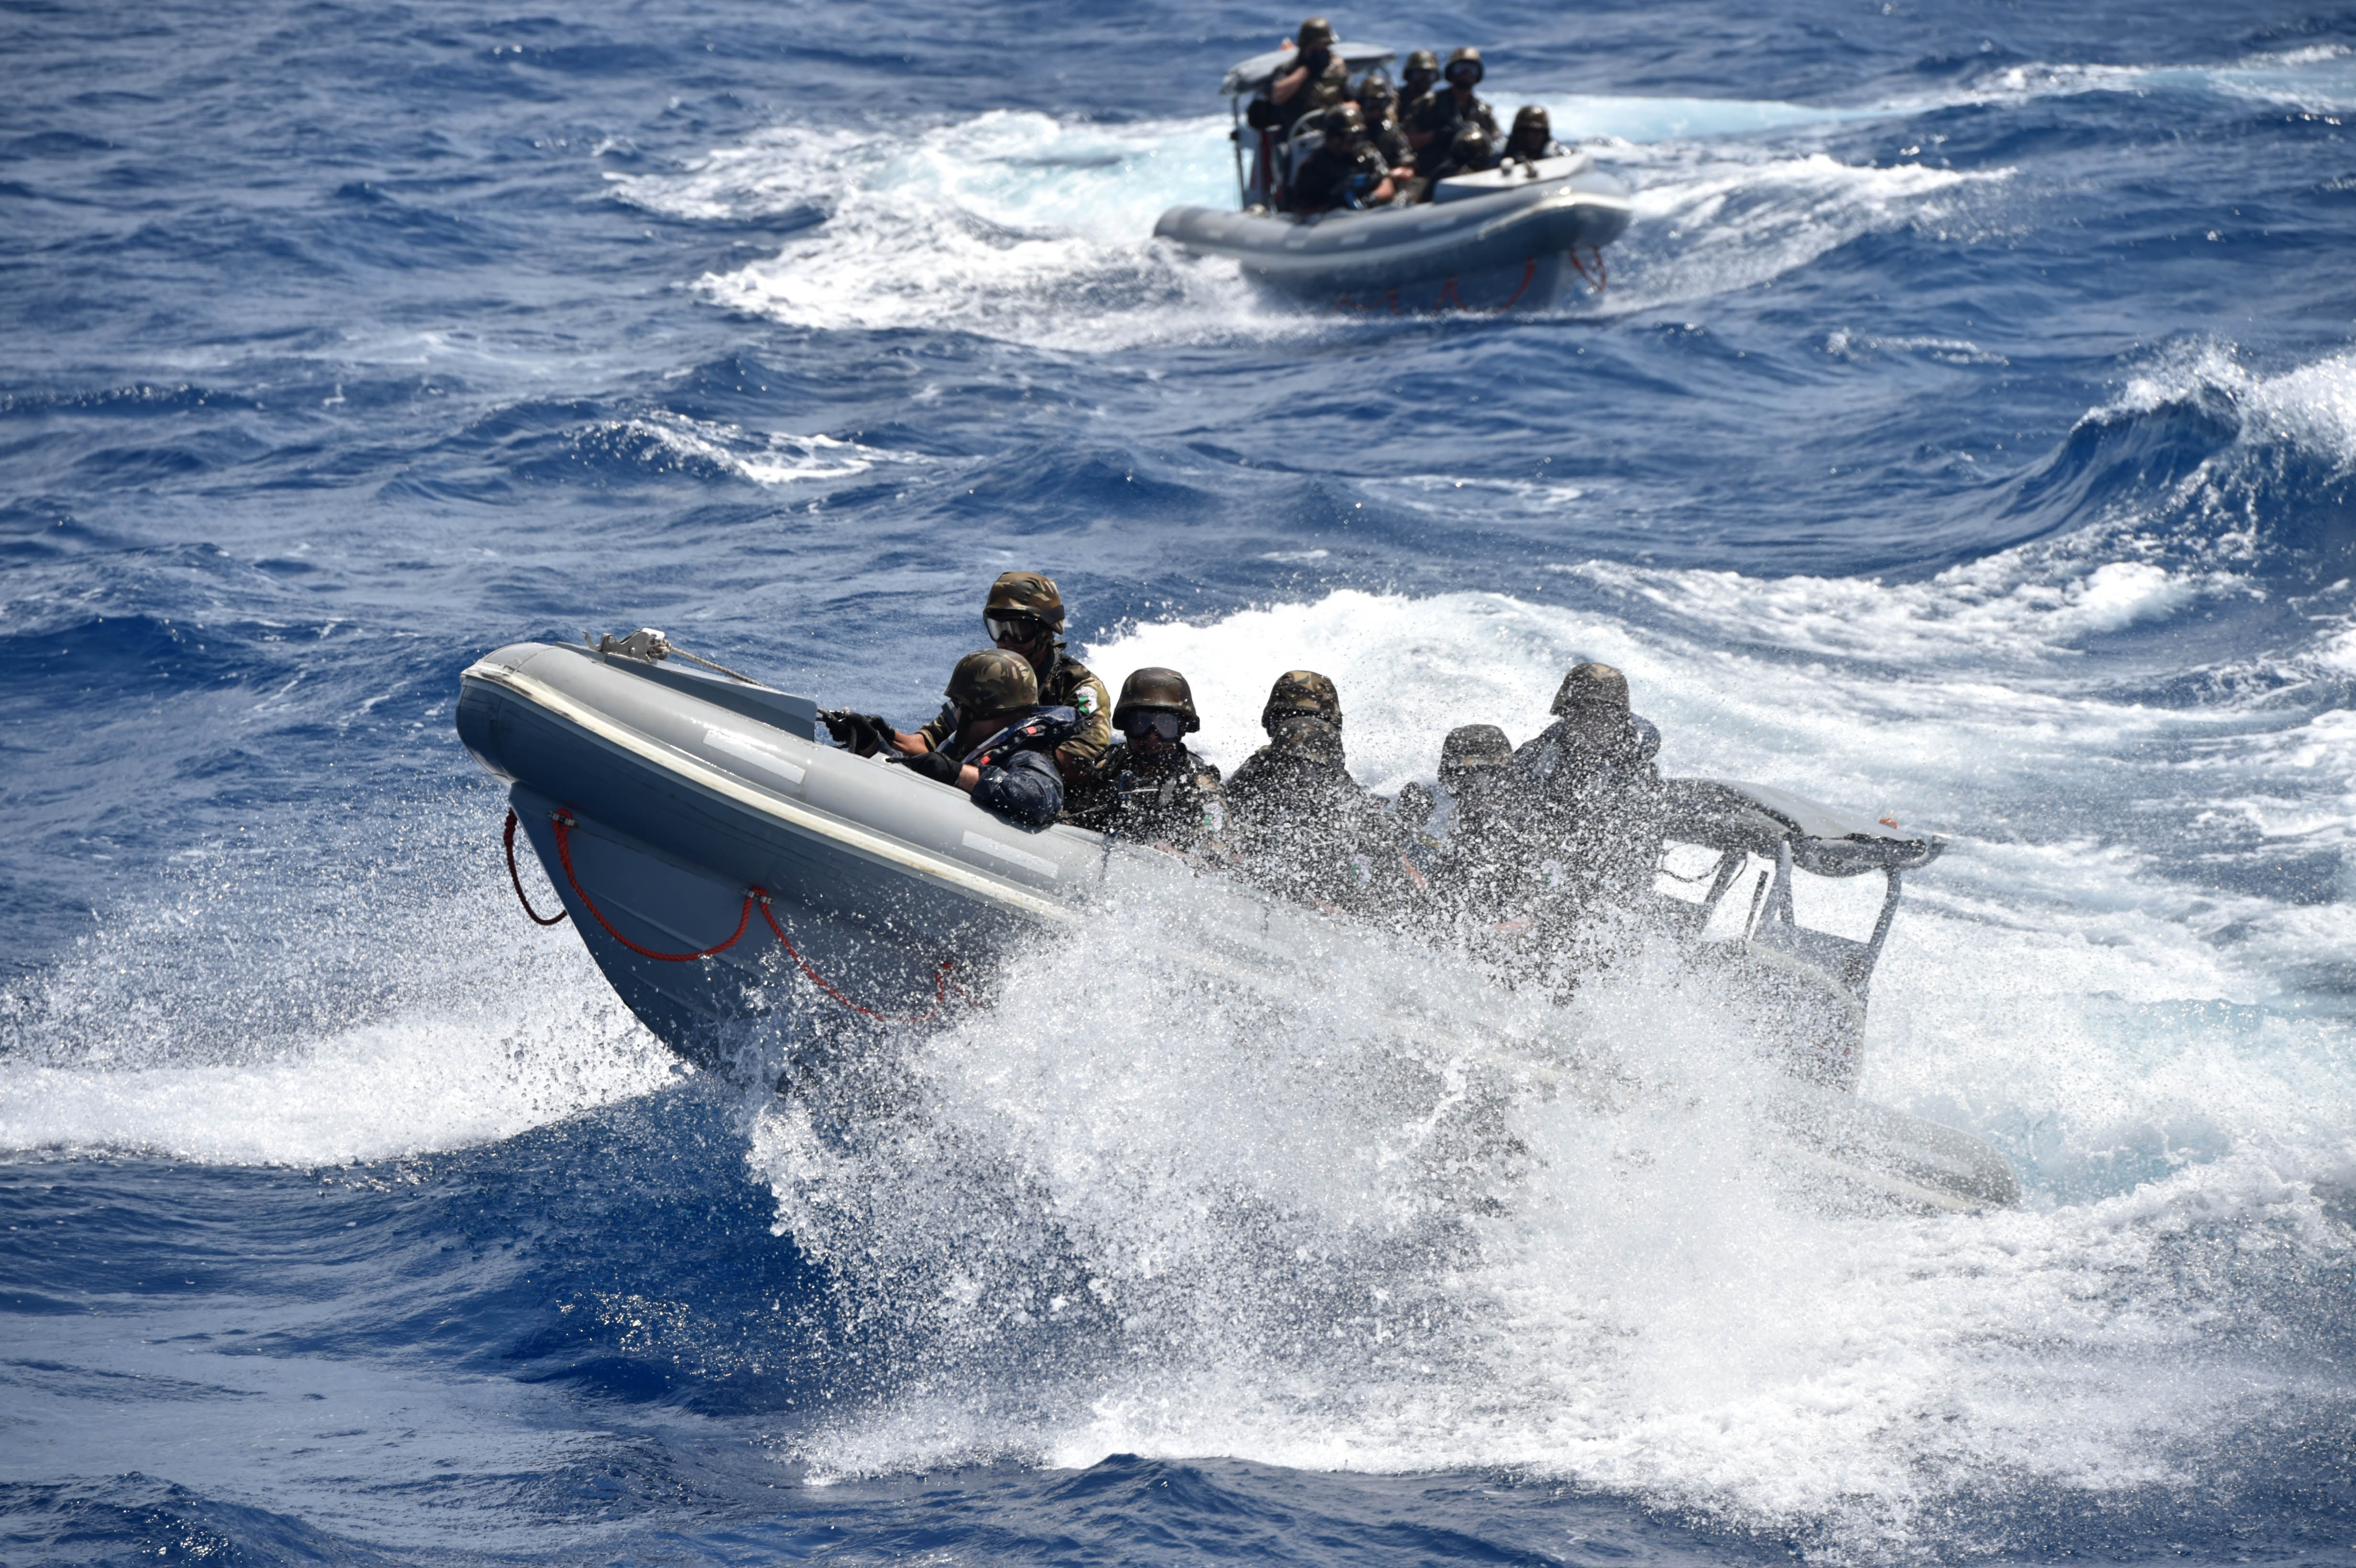 160522-N-XT273-882 MEDITERRANEAN SEA (May 22, 2016) Italian Sailors and Marines participate in a mock visit, board, search, and seizure boarding drill aboard the Algerian ship Kalaat Beni-Abbes 474 during Exercise Phoenix Express 2016 May 22. Phoenix Express is a U.S. Africa Command-sponsored multinational maritime exercise designed to increase maritime safety and security in the Mediterranean. (U.S. Navy photo by Mass Communication Specialist 2nd Class Justin Stumberg/Released)